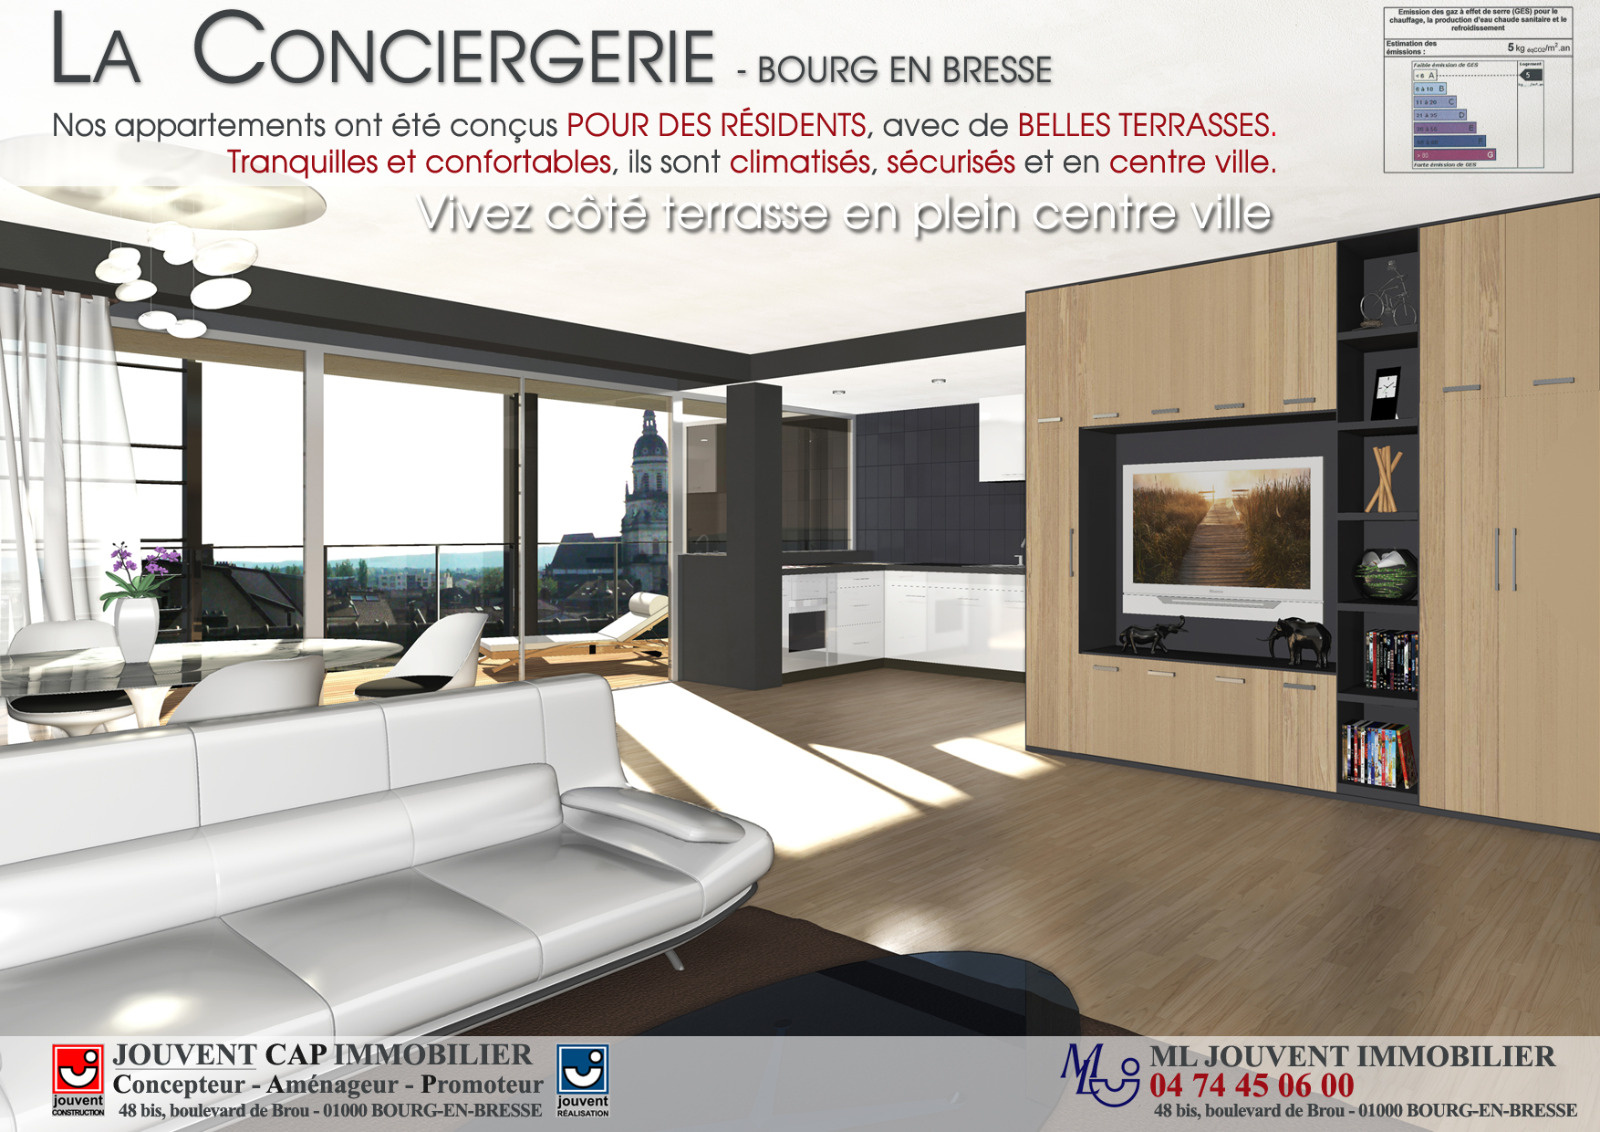 vente la conciergerie programme neuf centre ville bourg en bresse. Black Bedroom Furniture Sets. Home Design Ideas